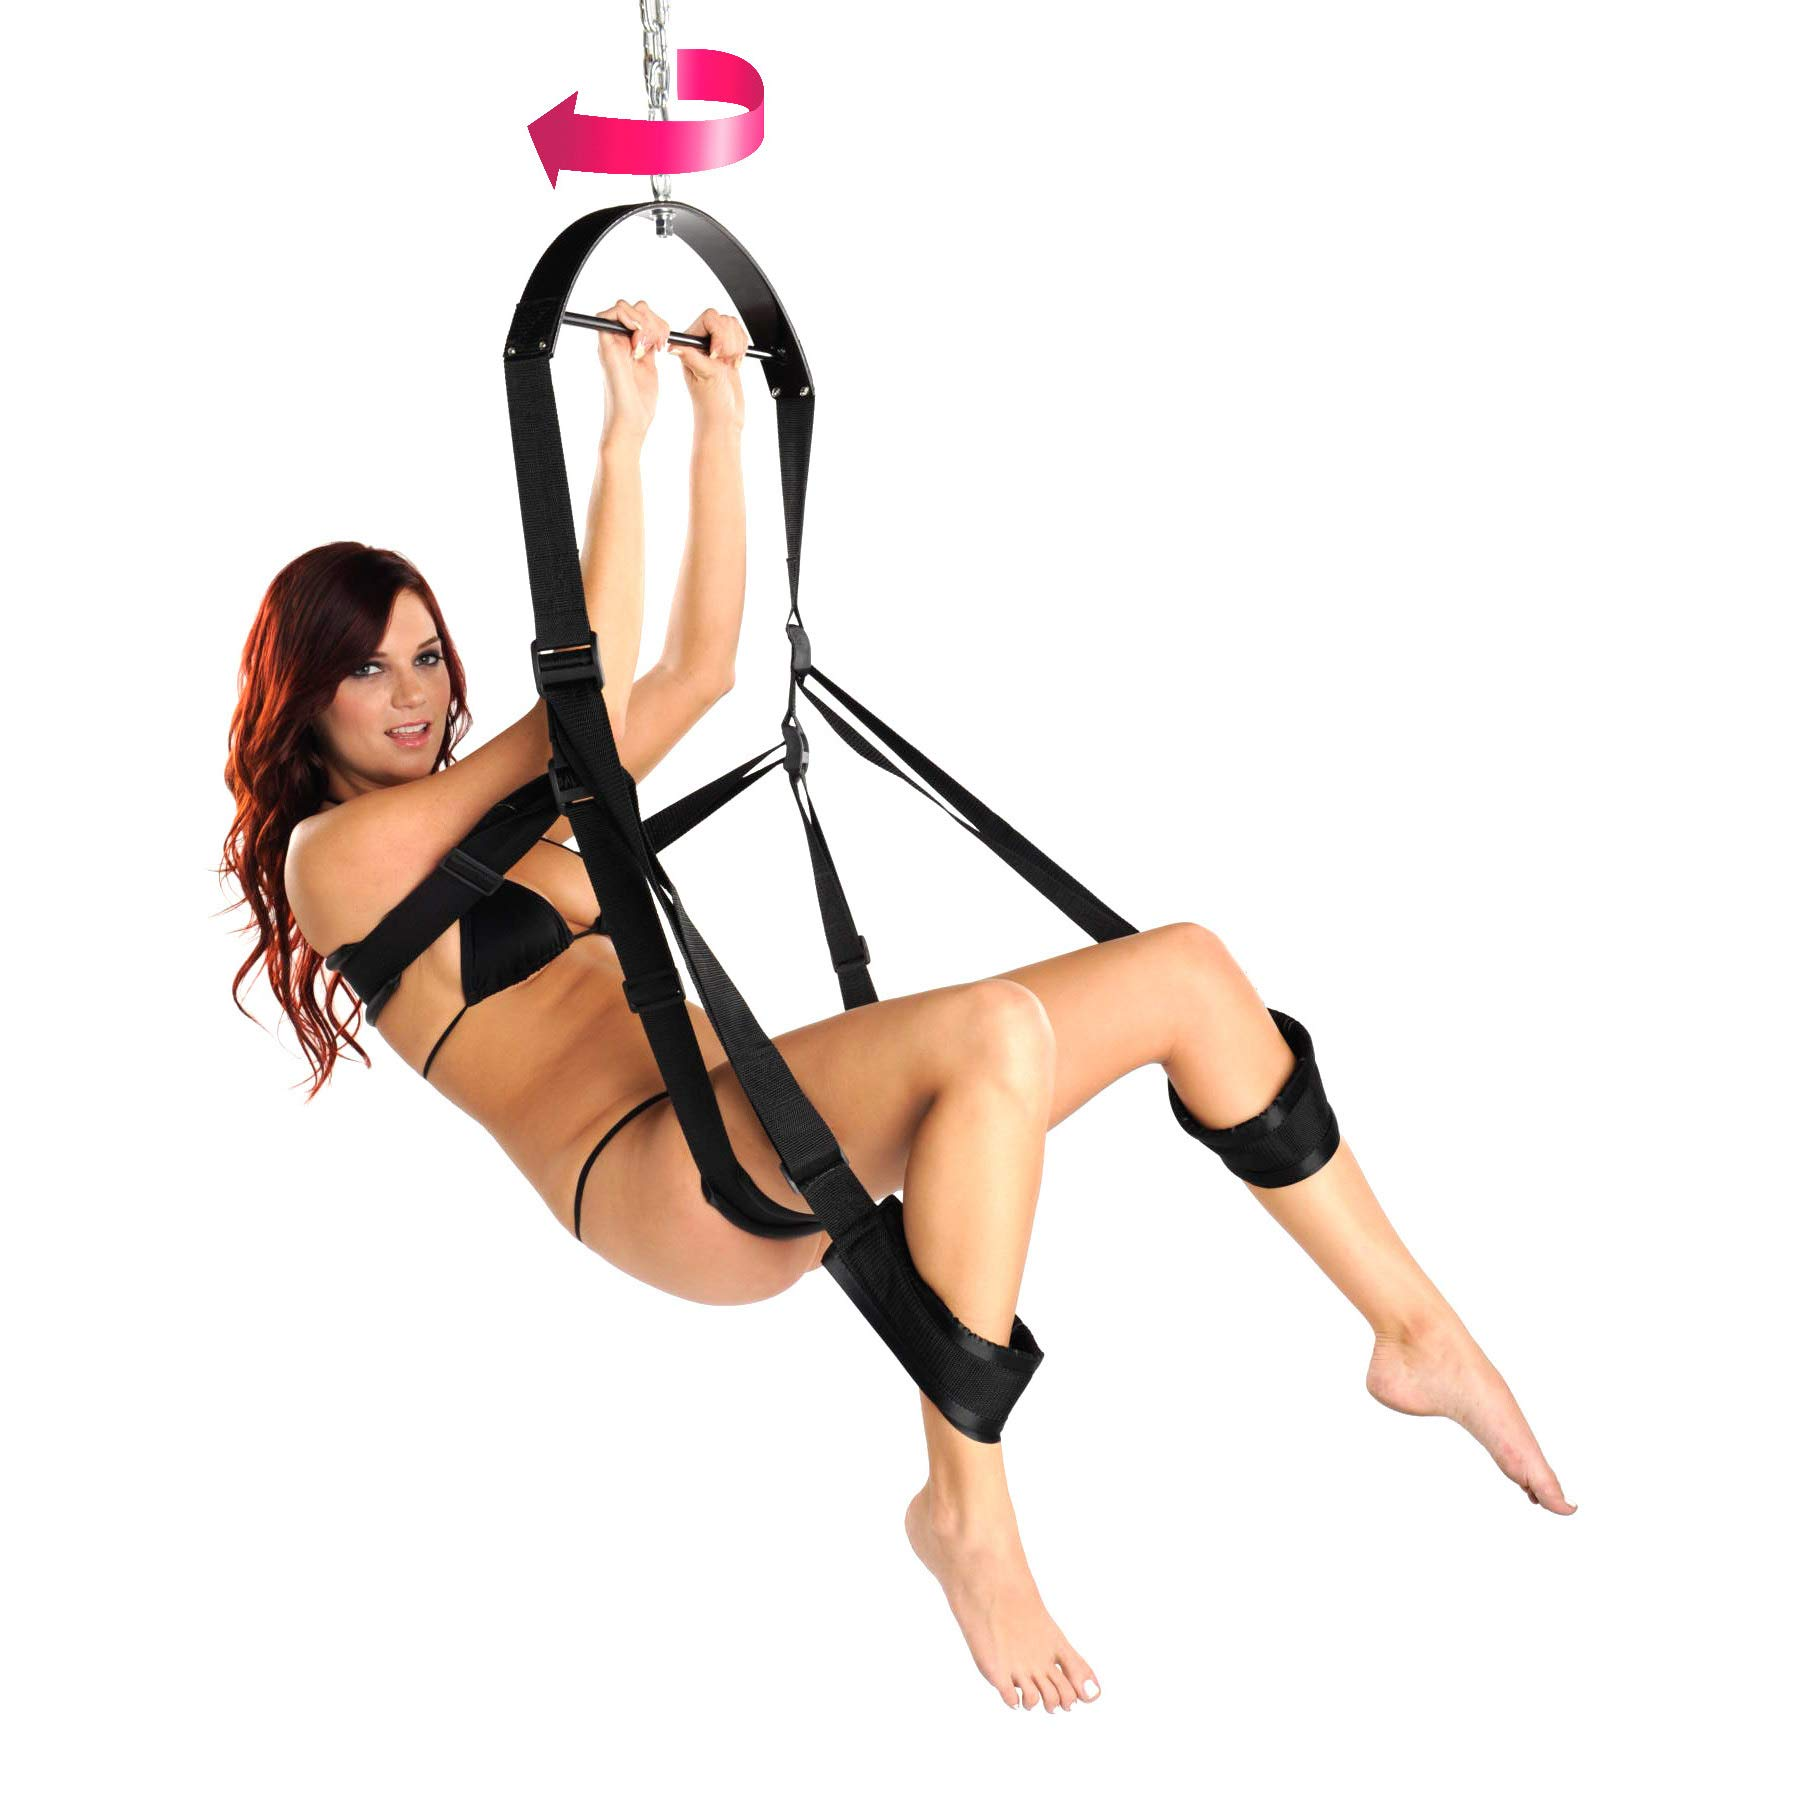 360 Degree Spinning Sex Swing by Trinity Vibes